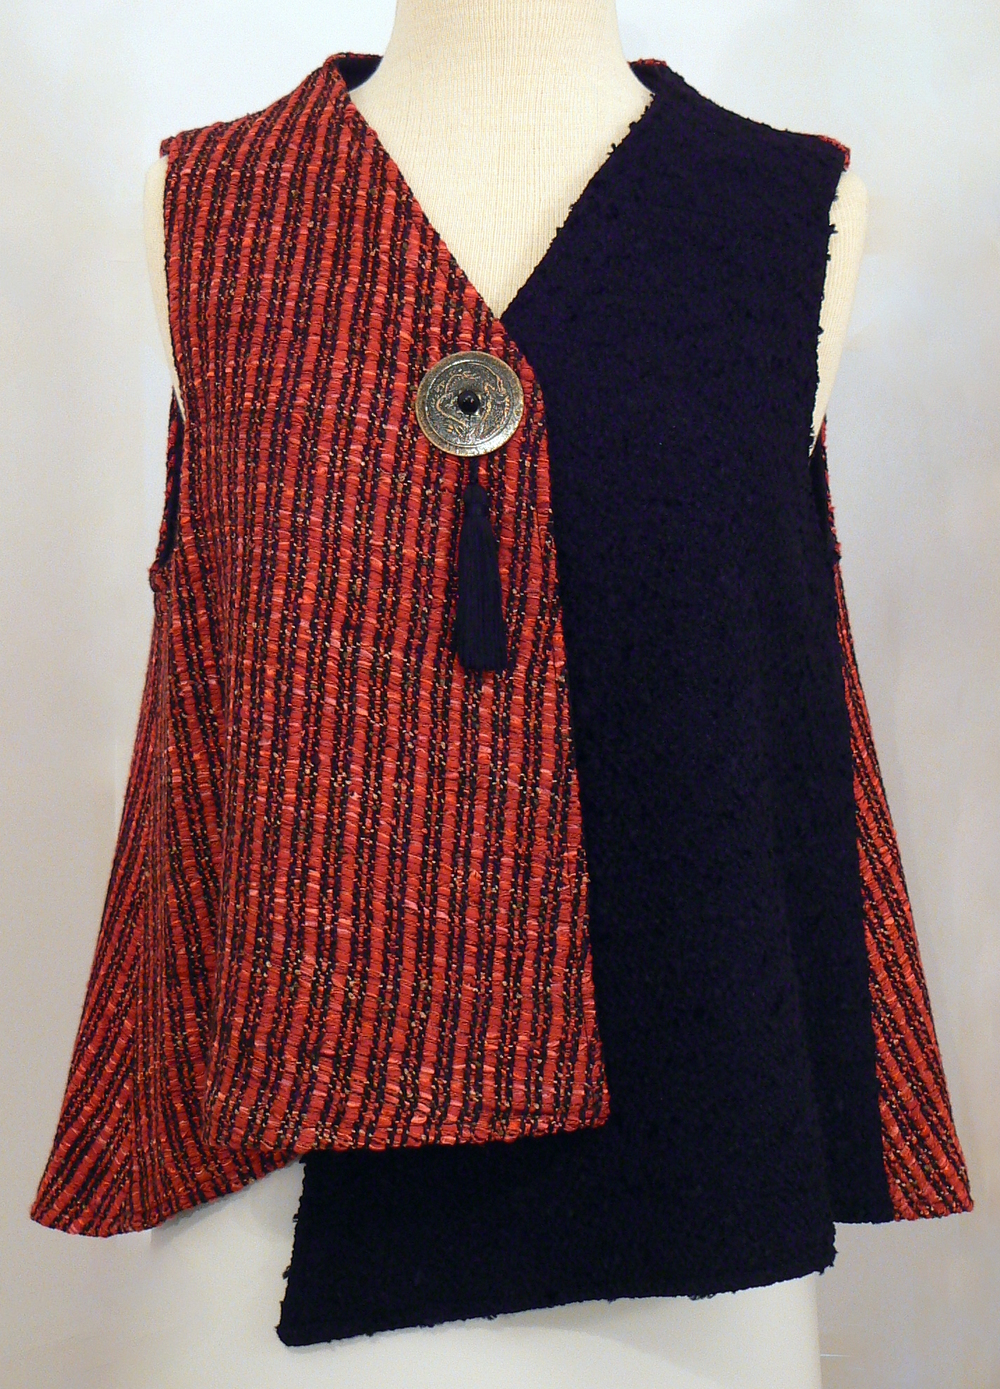 Handwoven Clothing, Vest, Kathleen Weir-West, 34-001.JPG